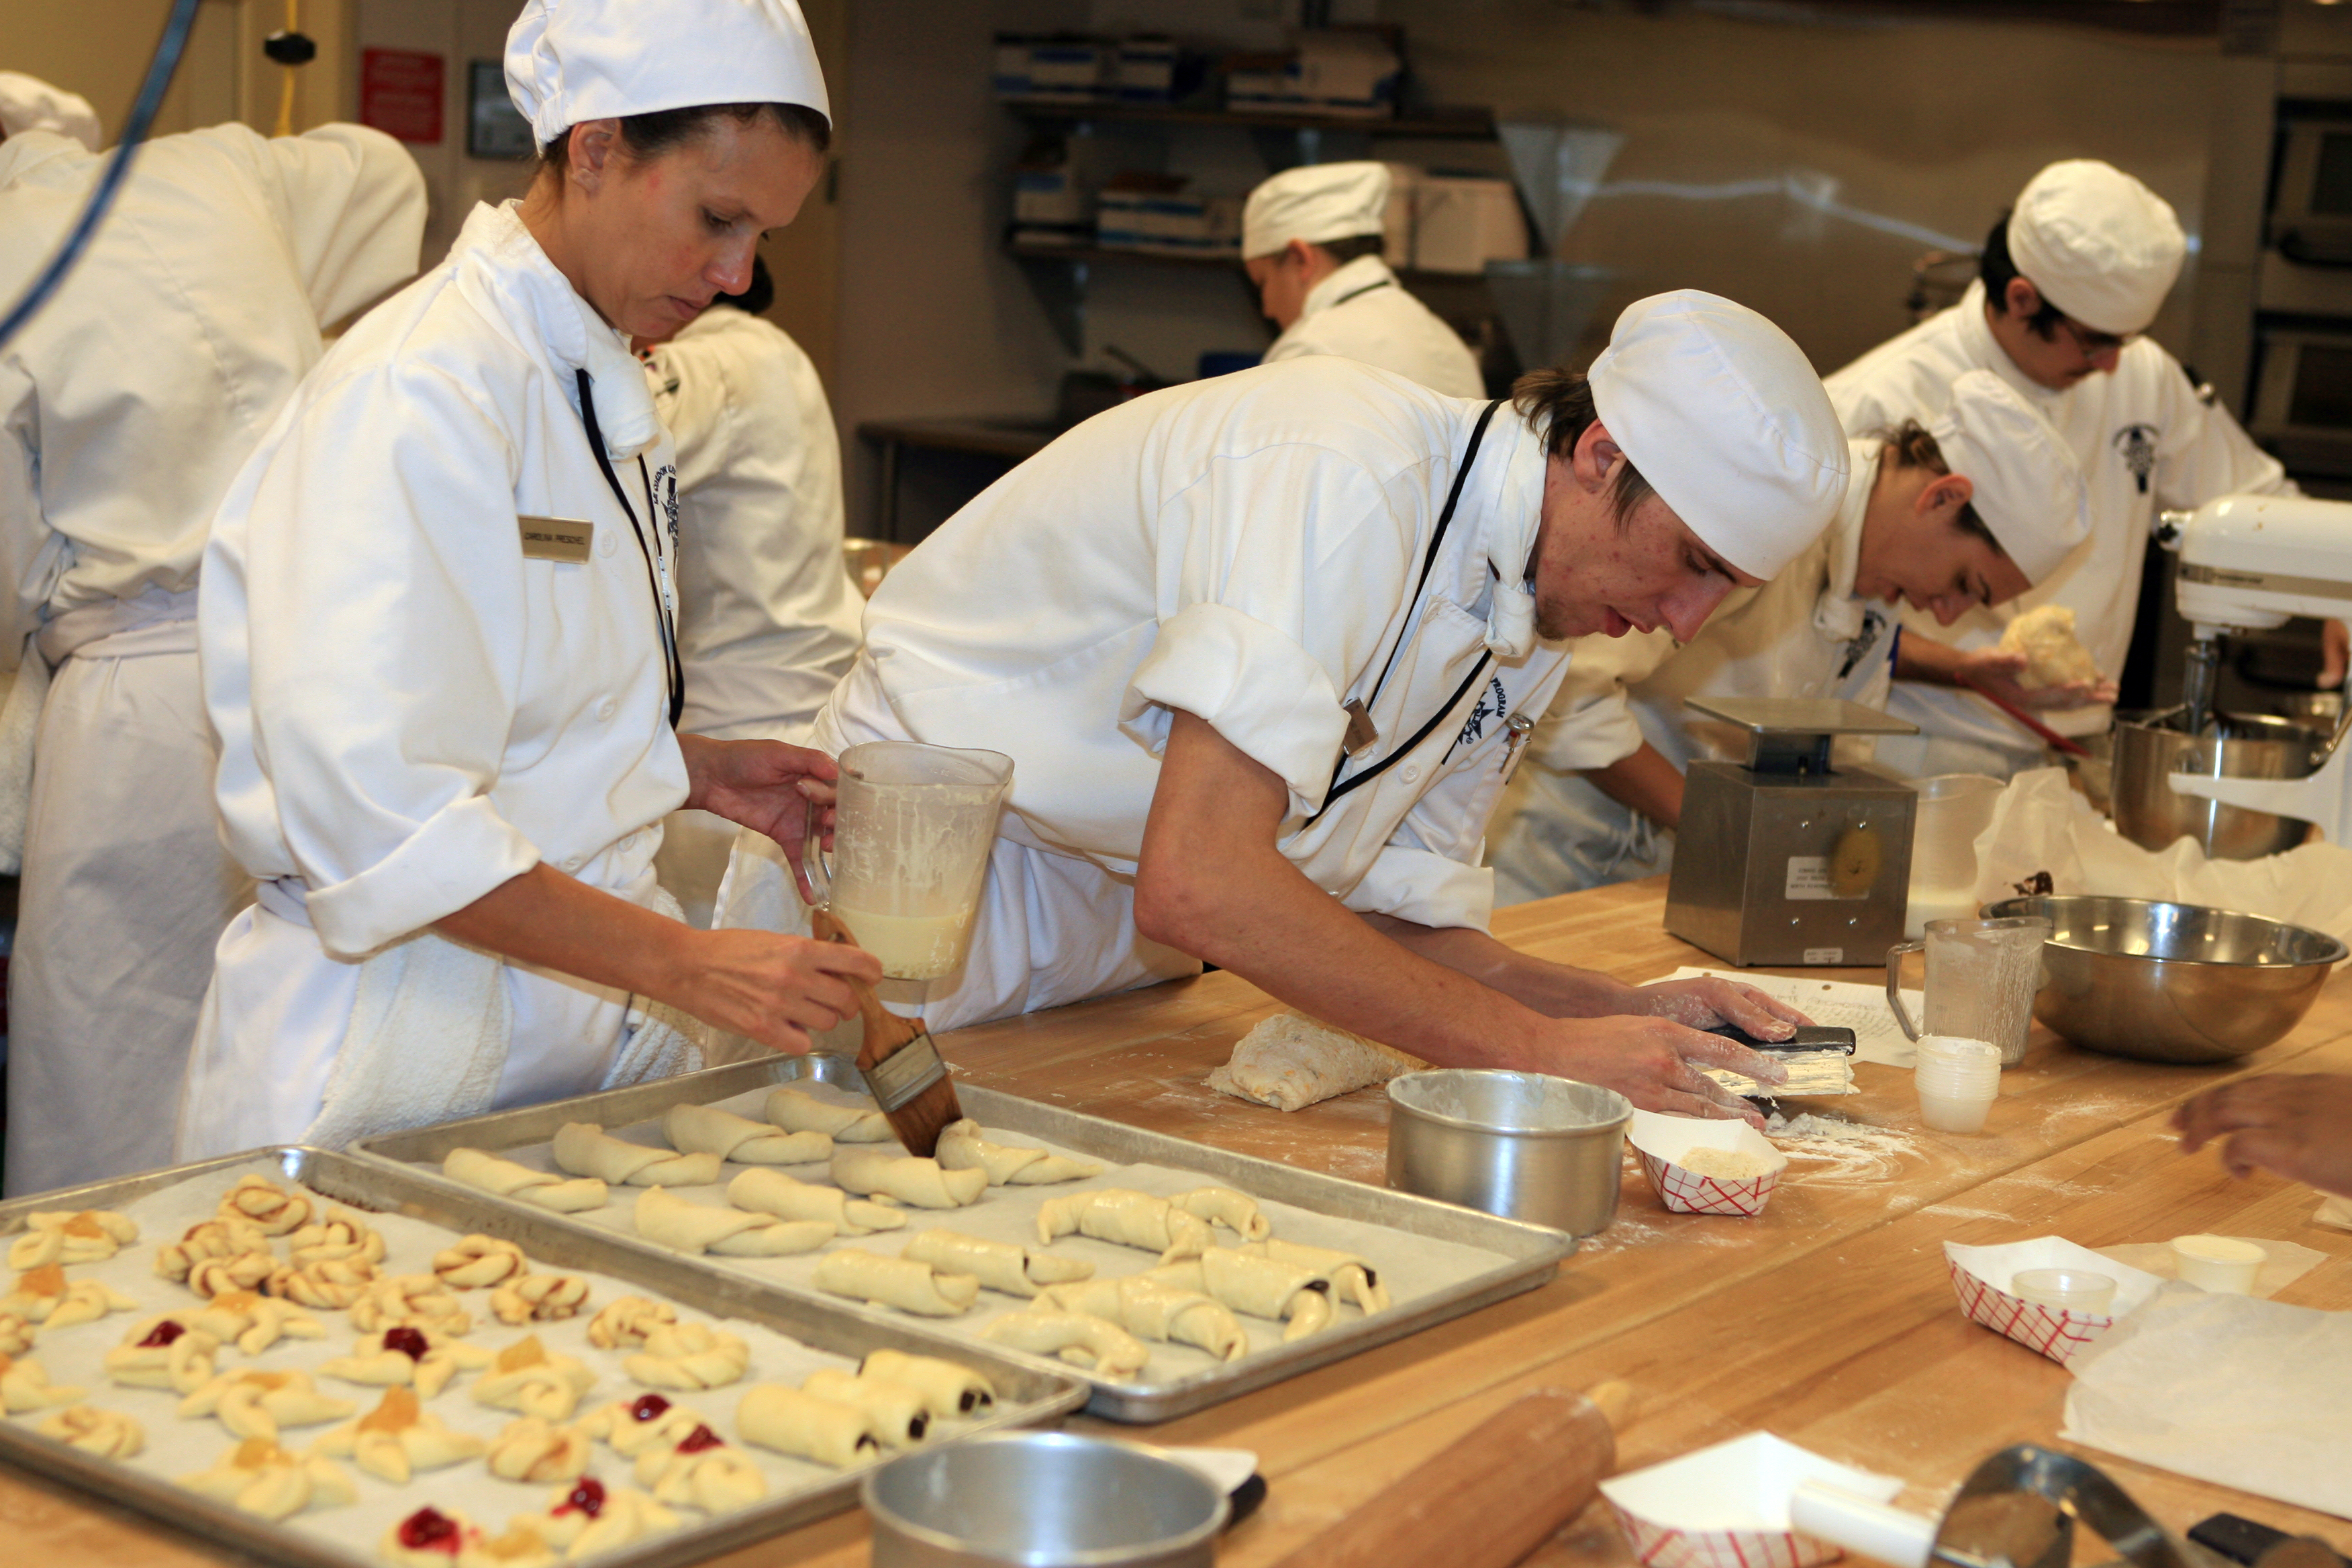 Bakers in white uniforms and hats put together and garnish homemade pastries